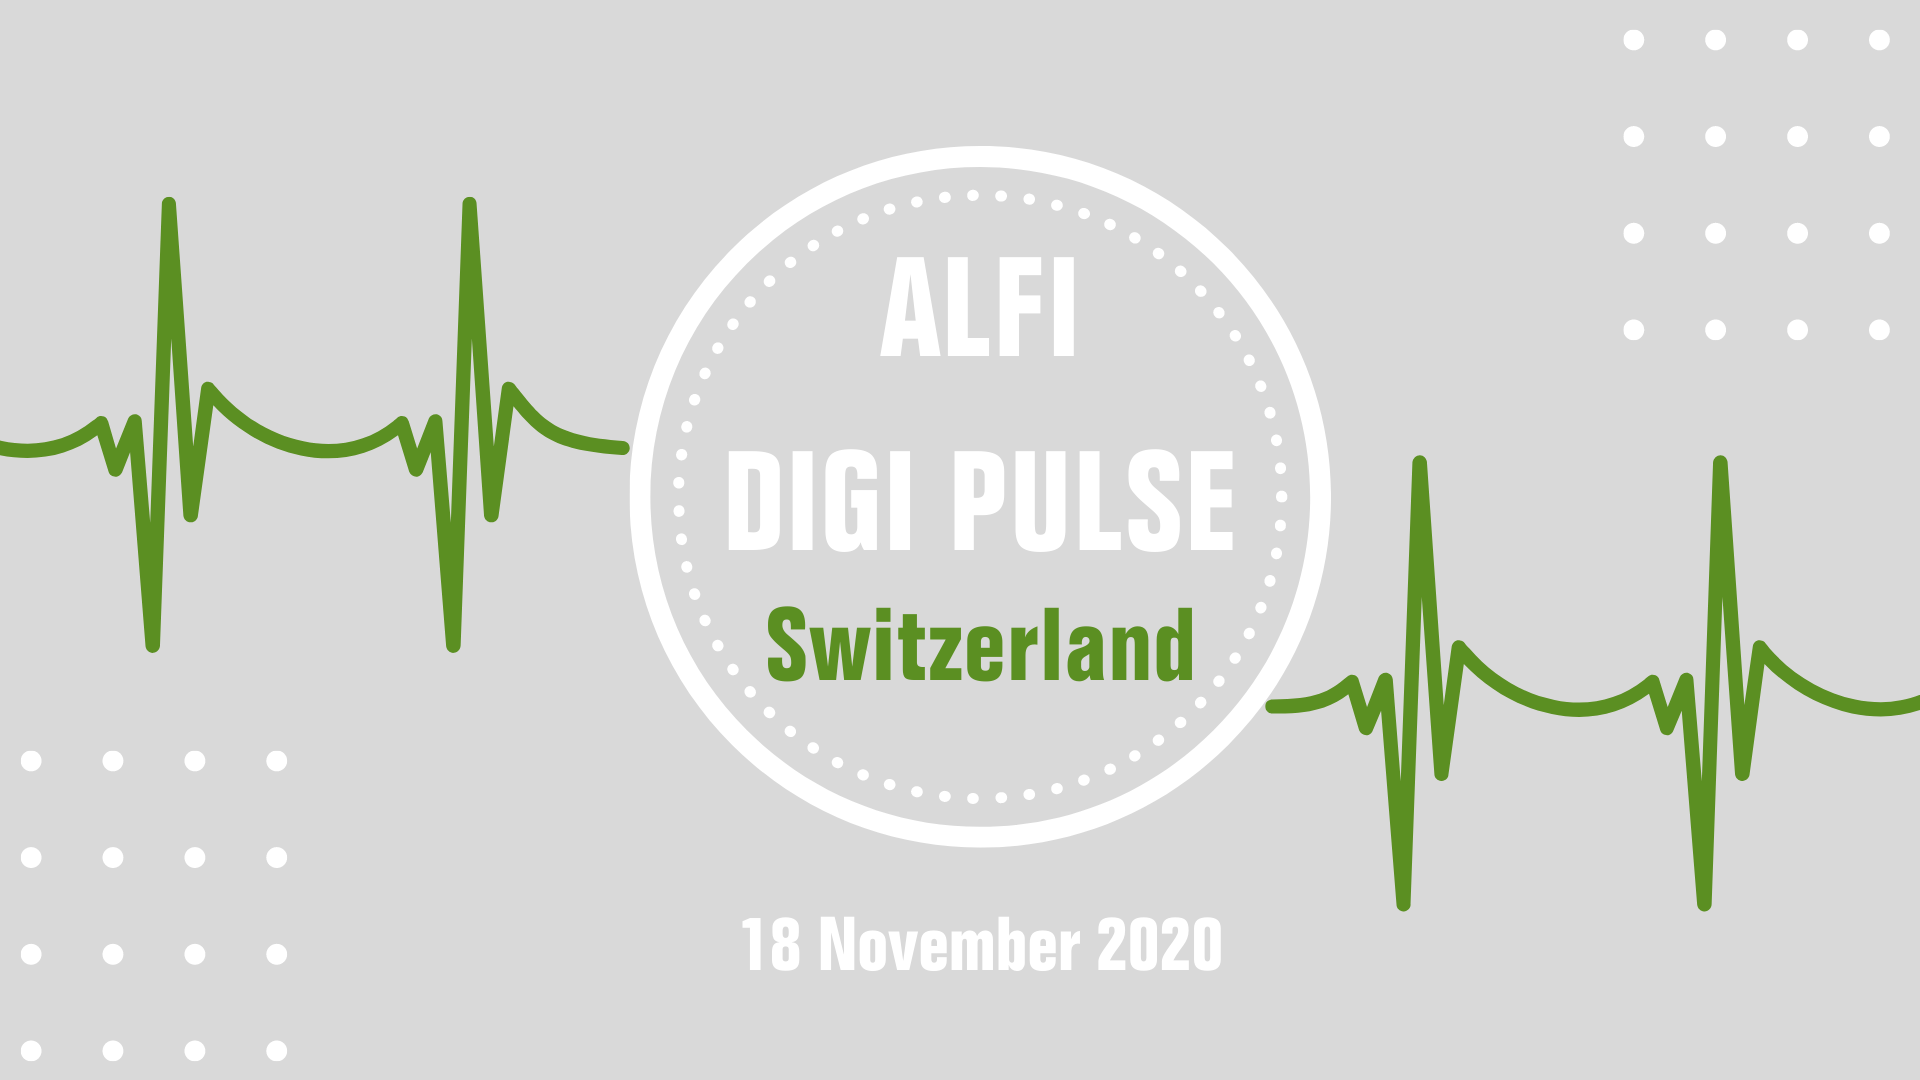 Alfi digi pulse switzerland banner